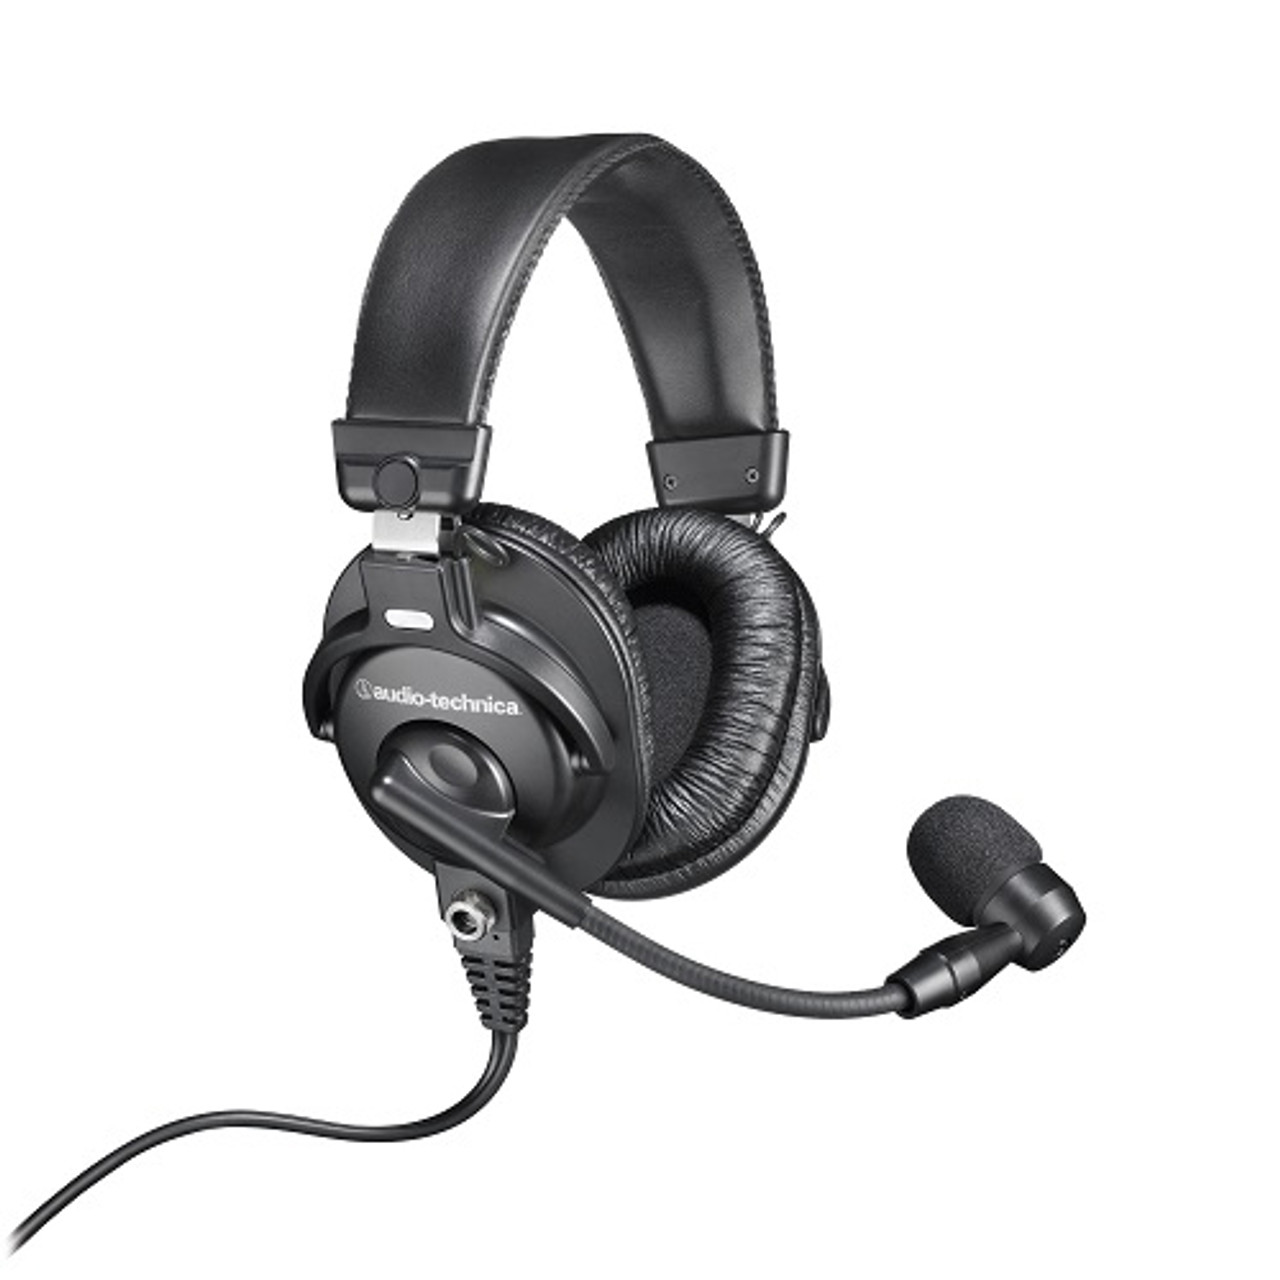 Audio-Technica BPHS1 broadcast stereo headset with boom microphone